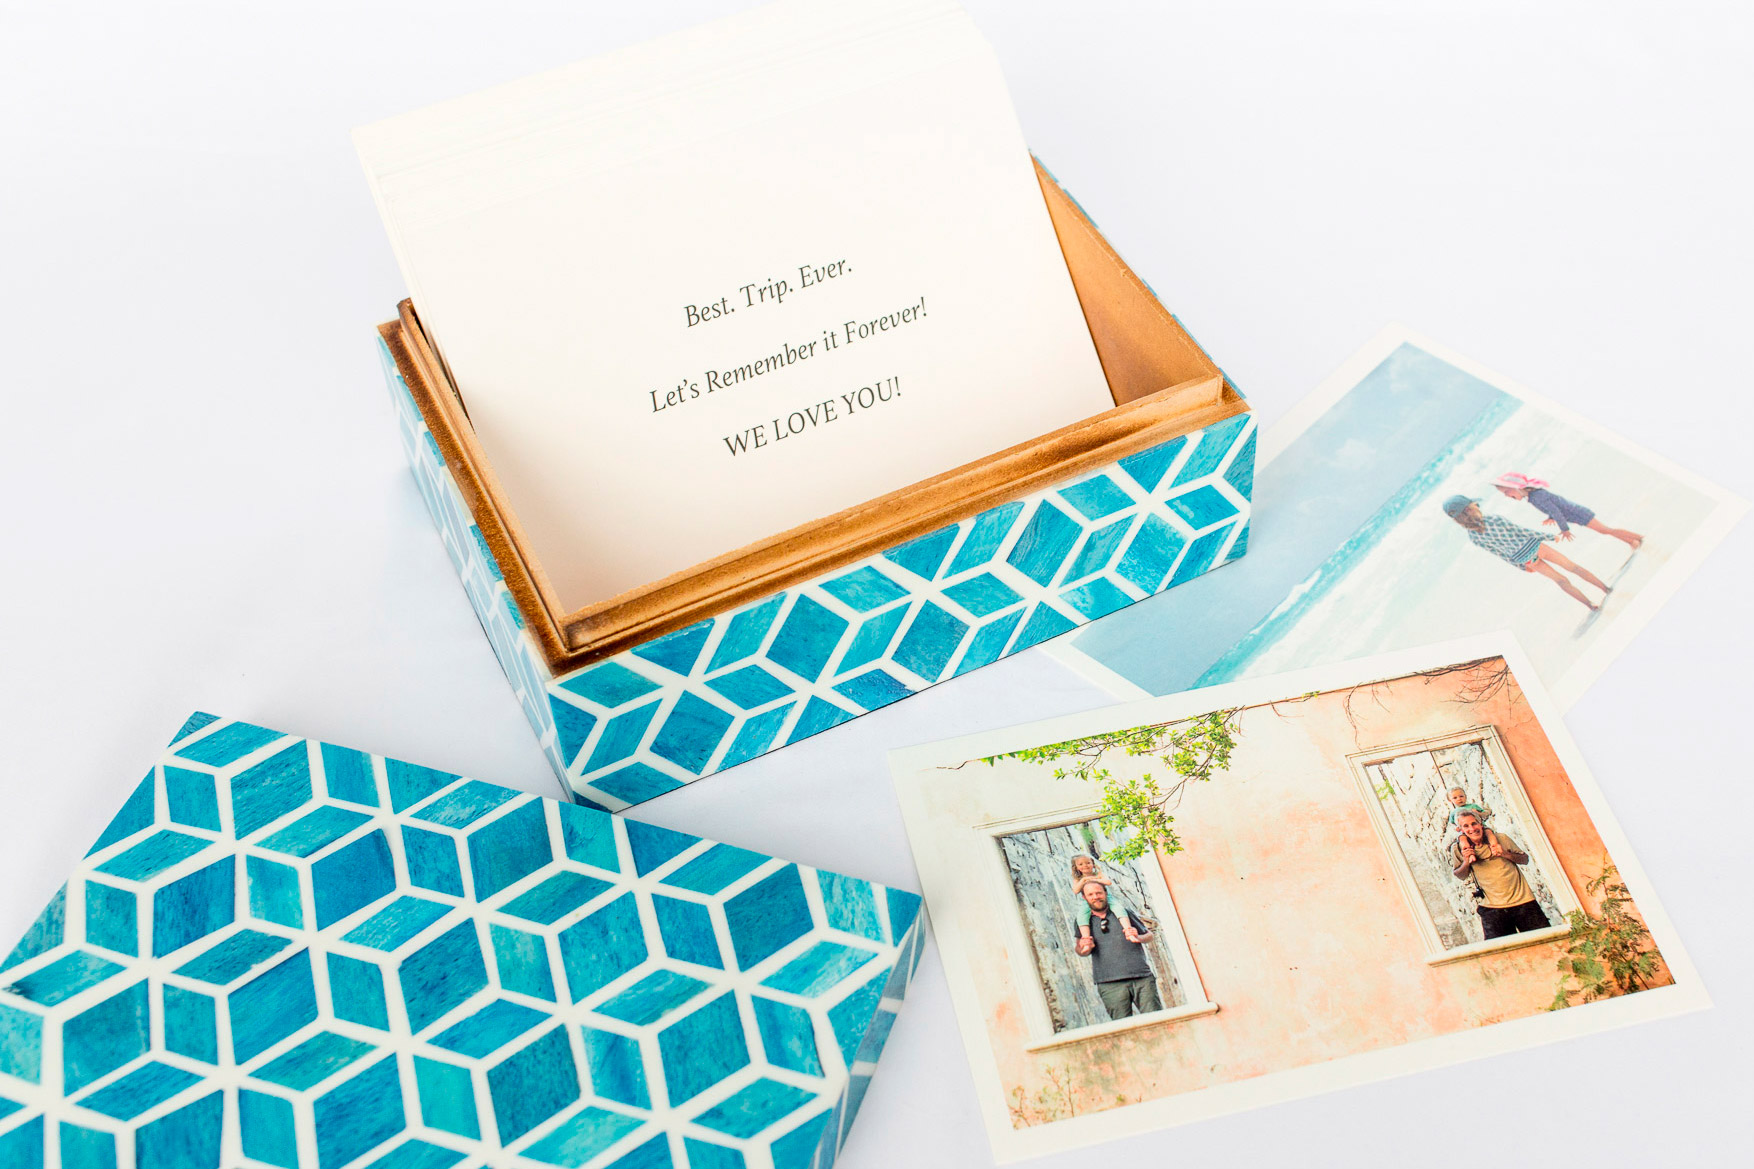 Boombox Gifts – Turquoise Tile – Open